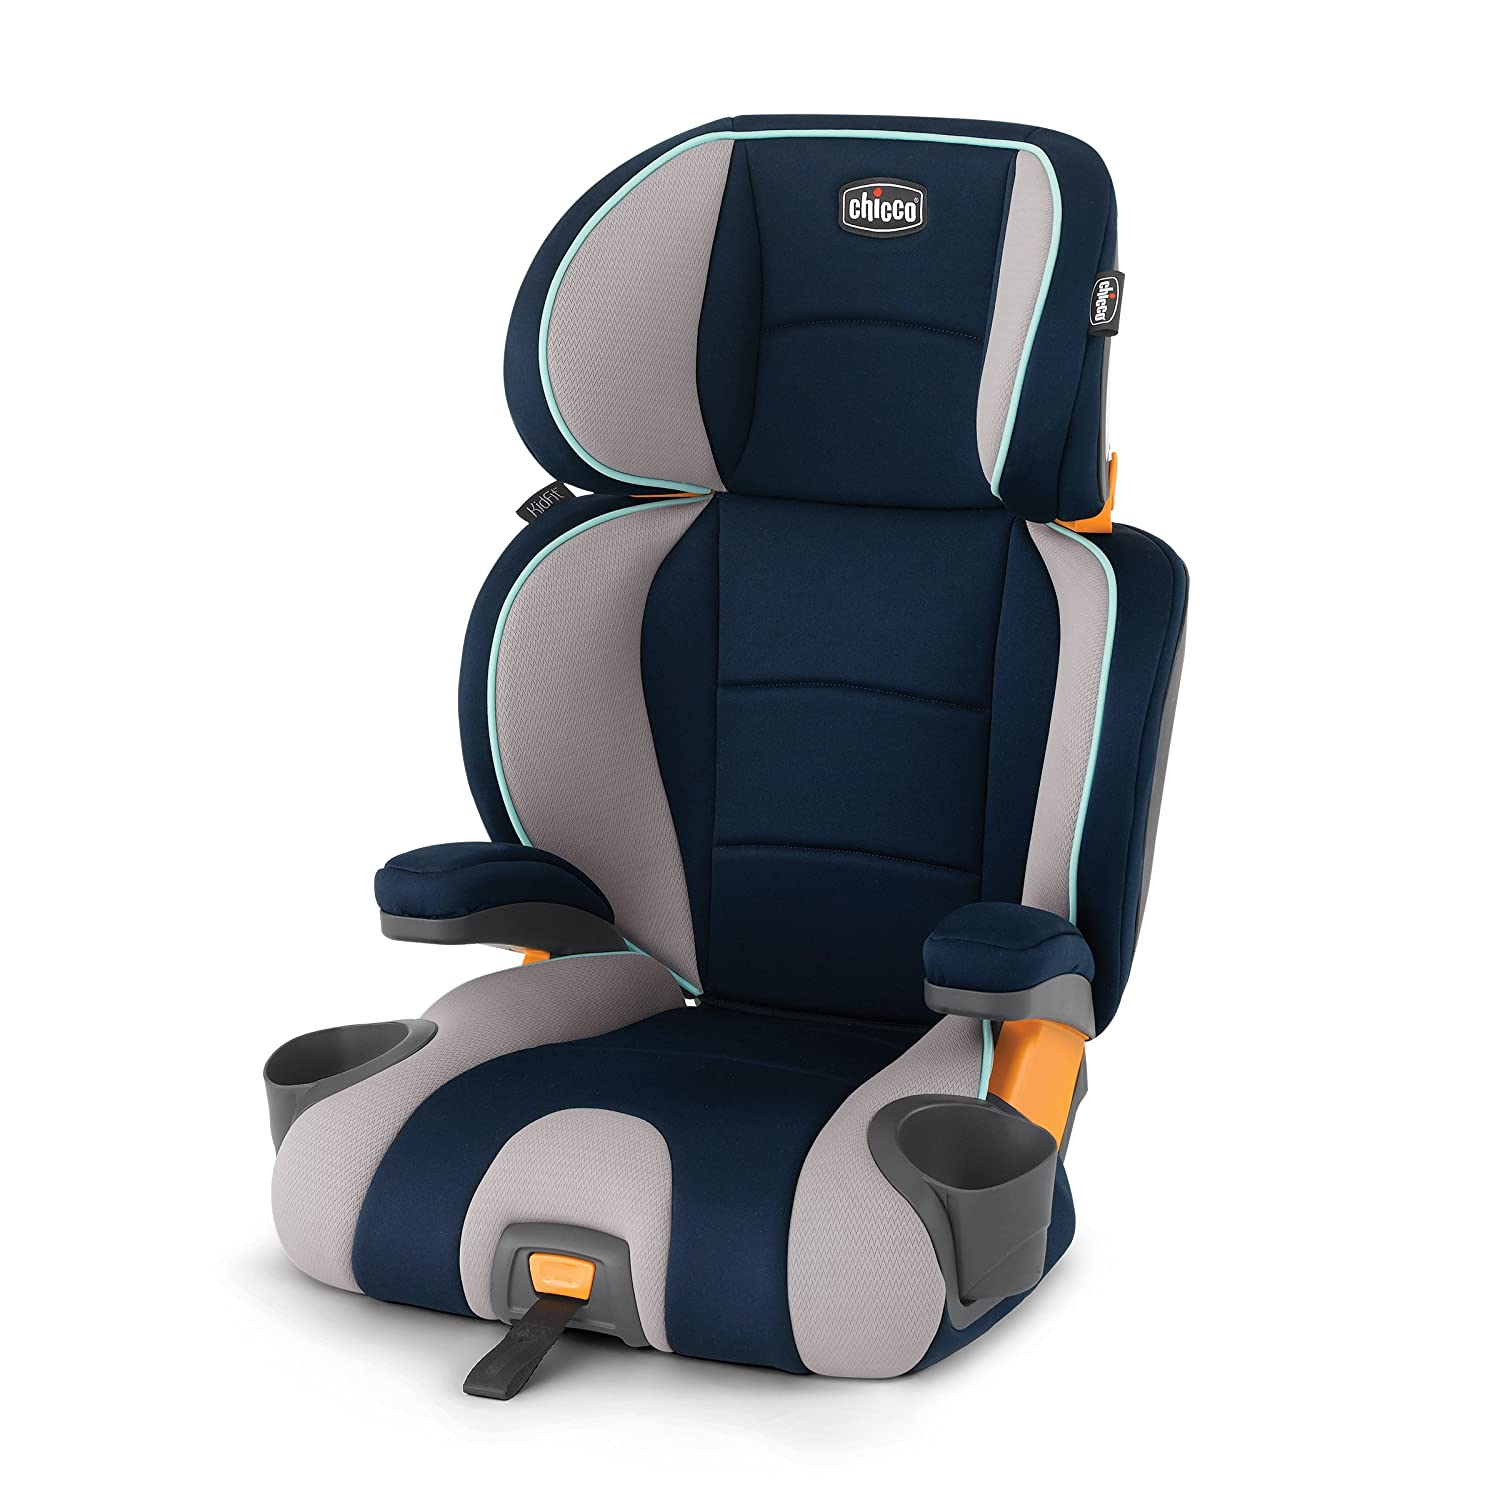 Chicco KidFit 2-in-1 Booster Seat